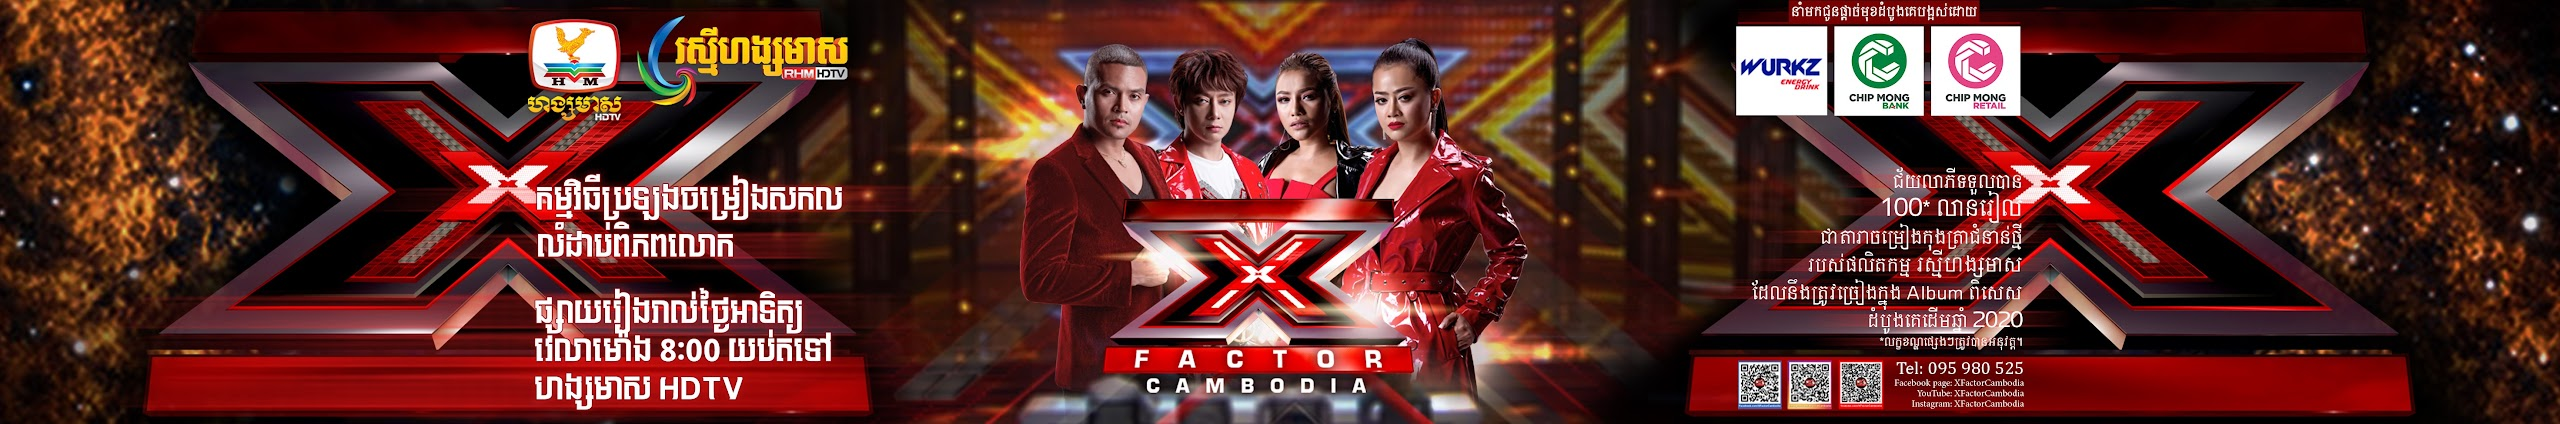 X factor 2020 youtube